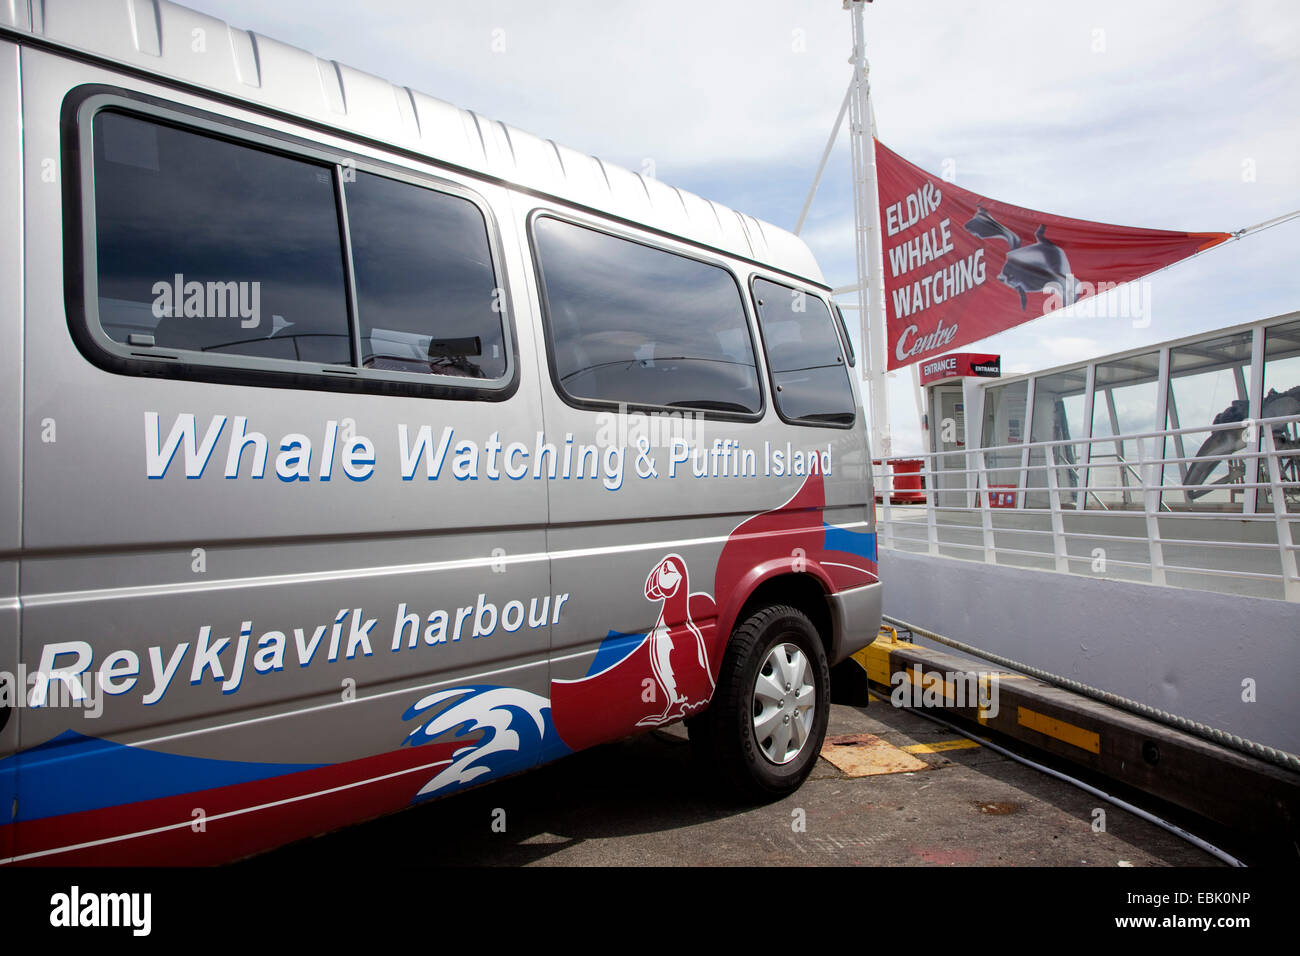 promotions for whale and seabird watching tours at mini bus, Iceland, Reykjavik - Stock Image